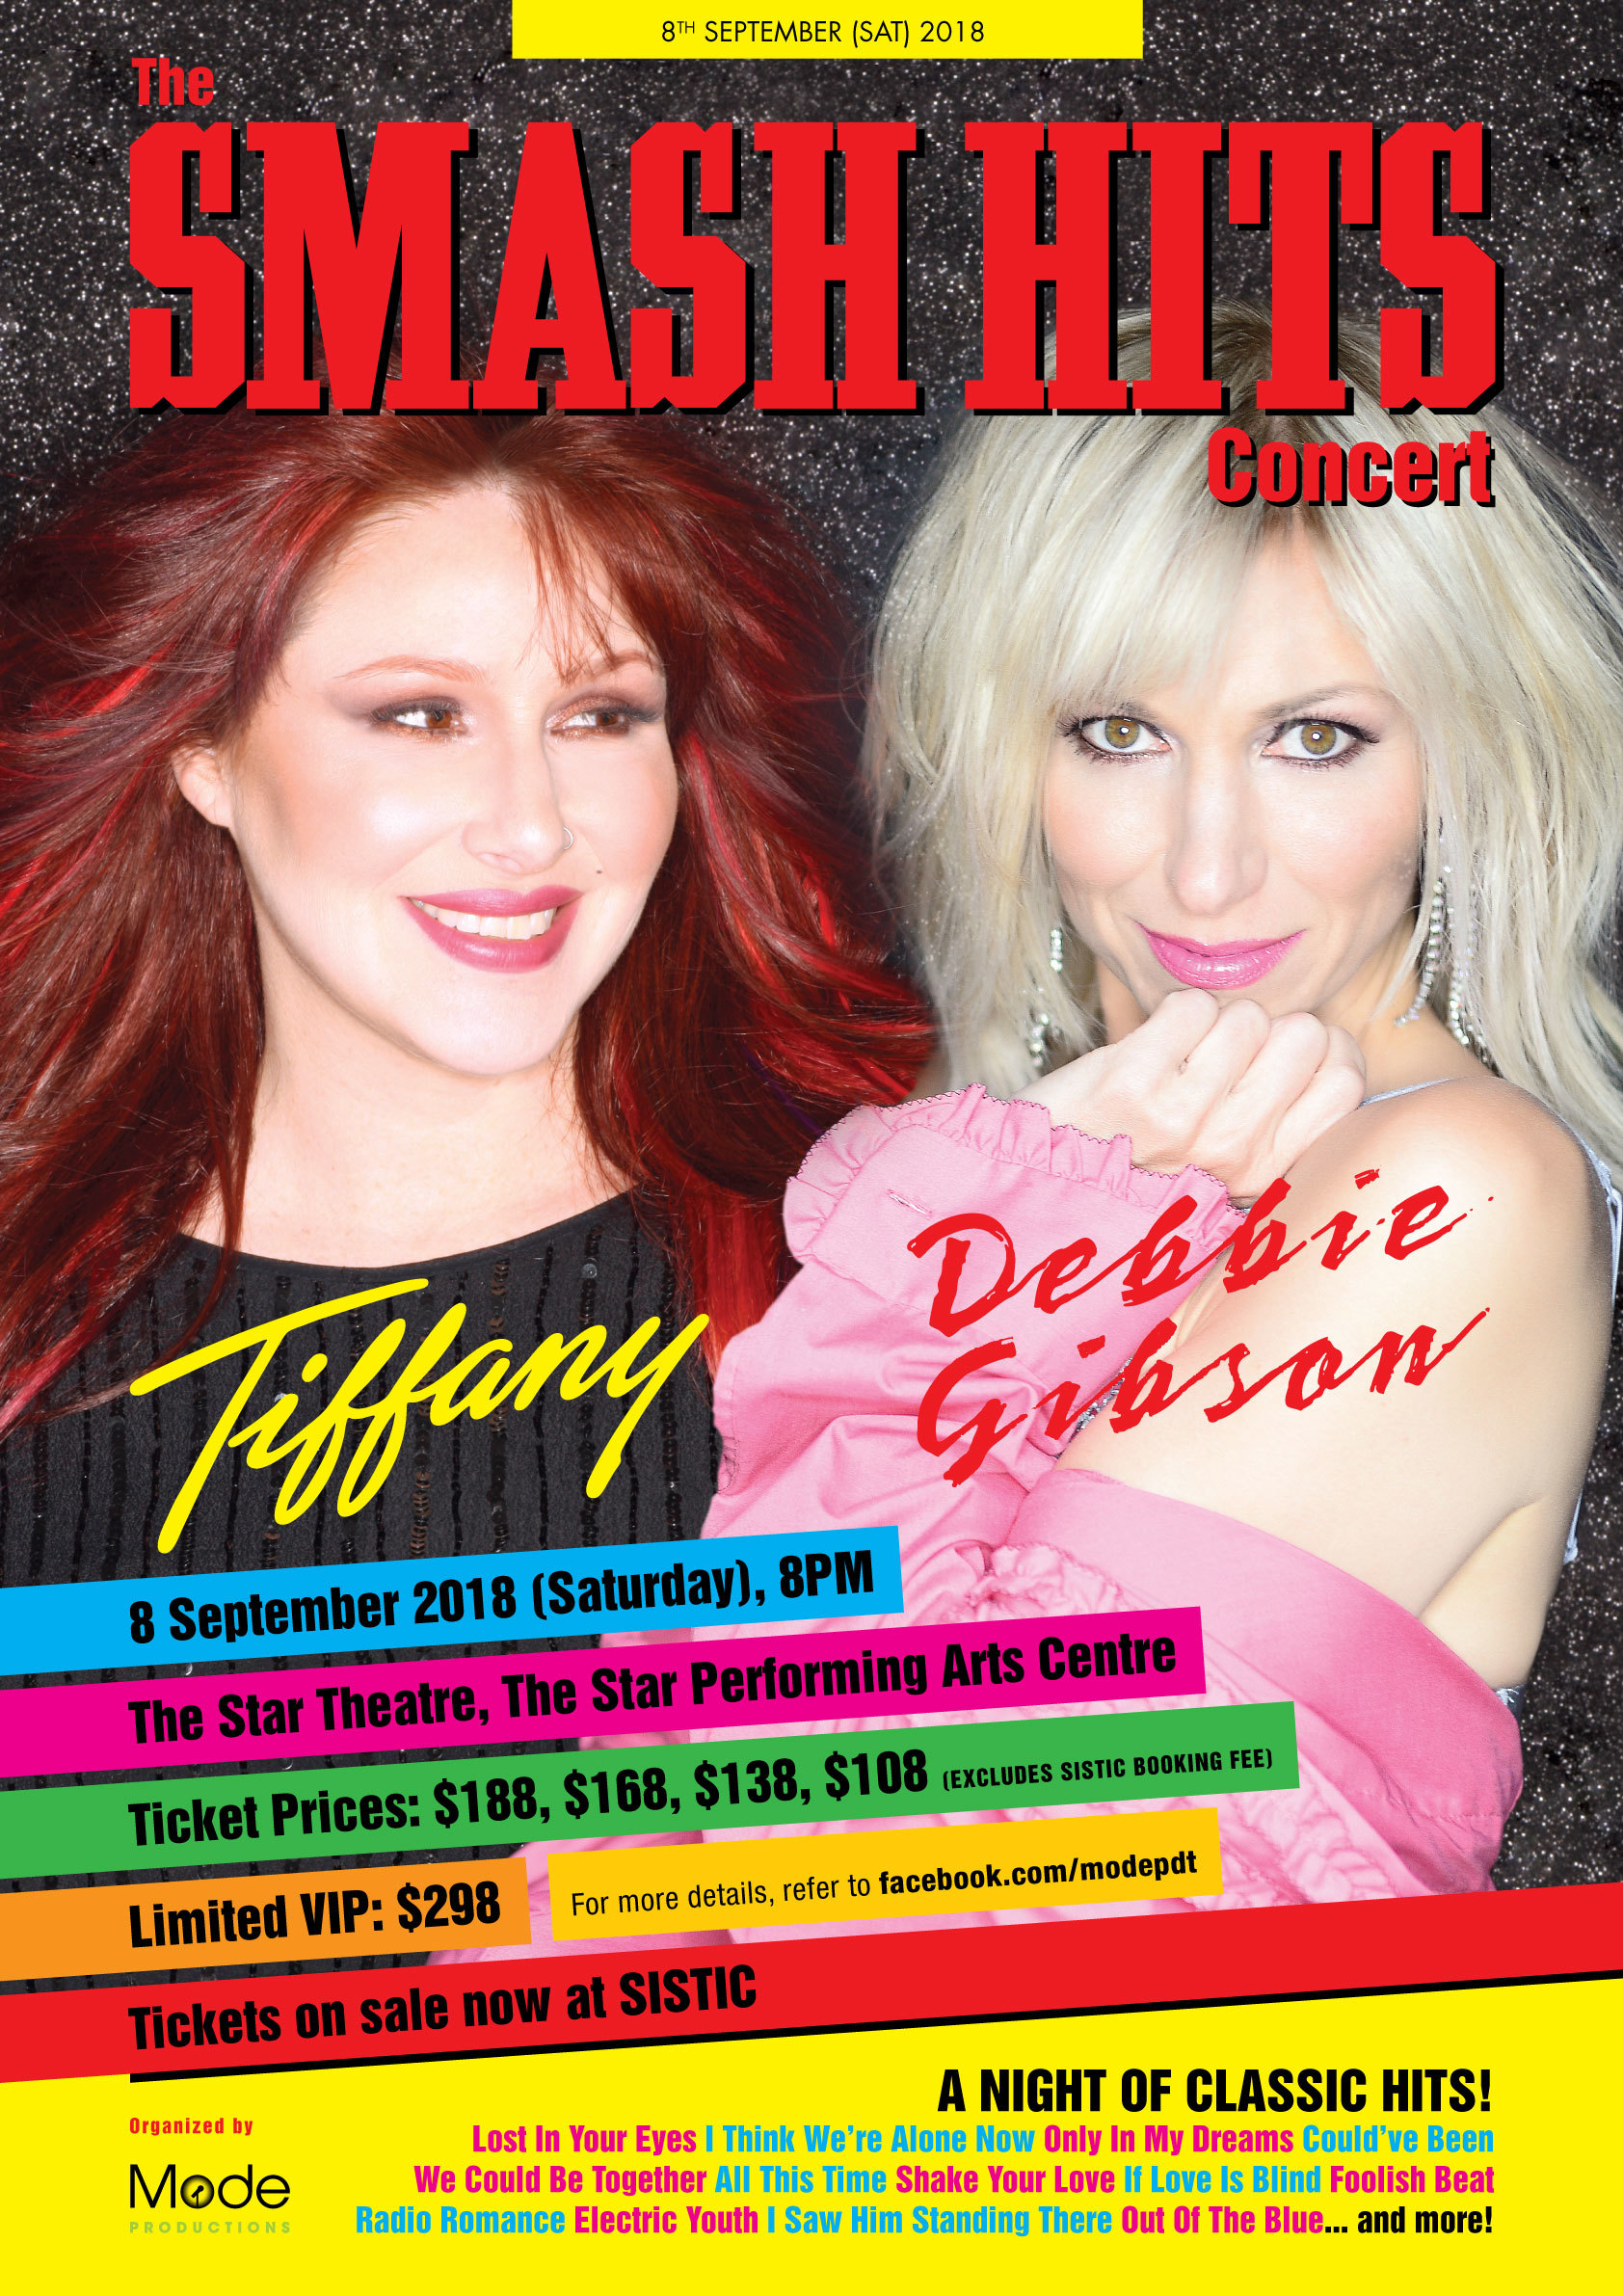 Tiffany and Debbie Gibson to perform together in Singapore this